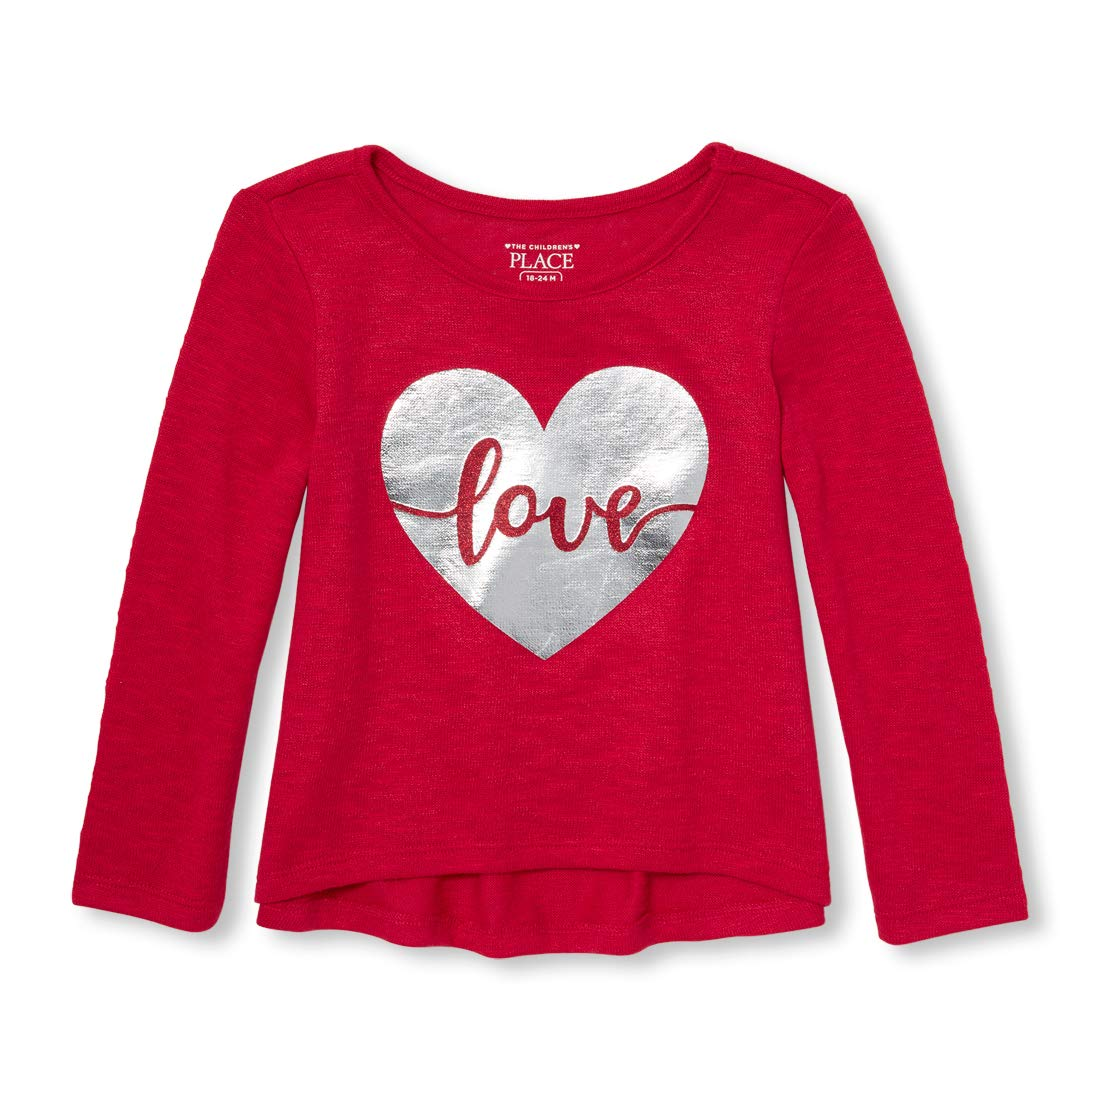 The Childrens Place Girls Toddler Long Sleeve Shirt